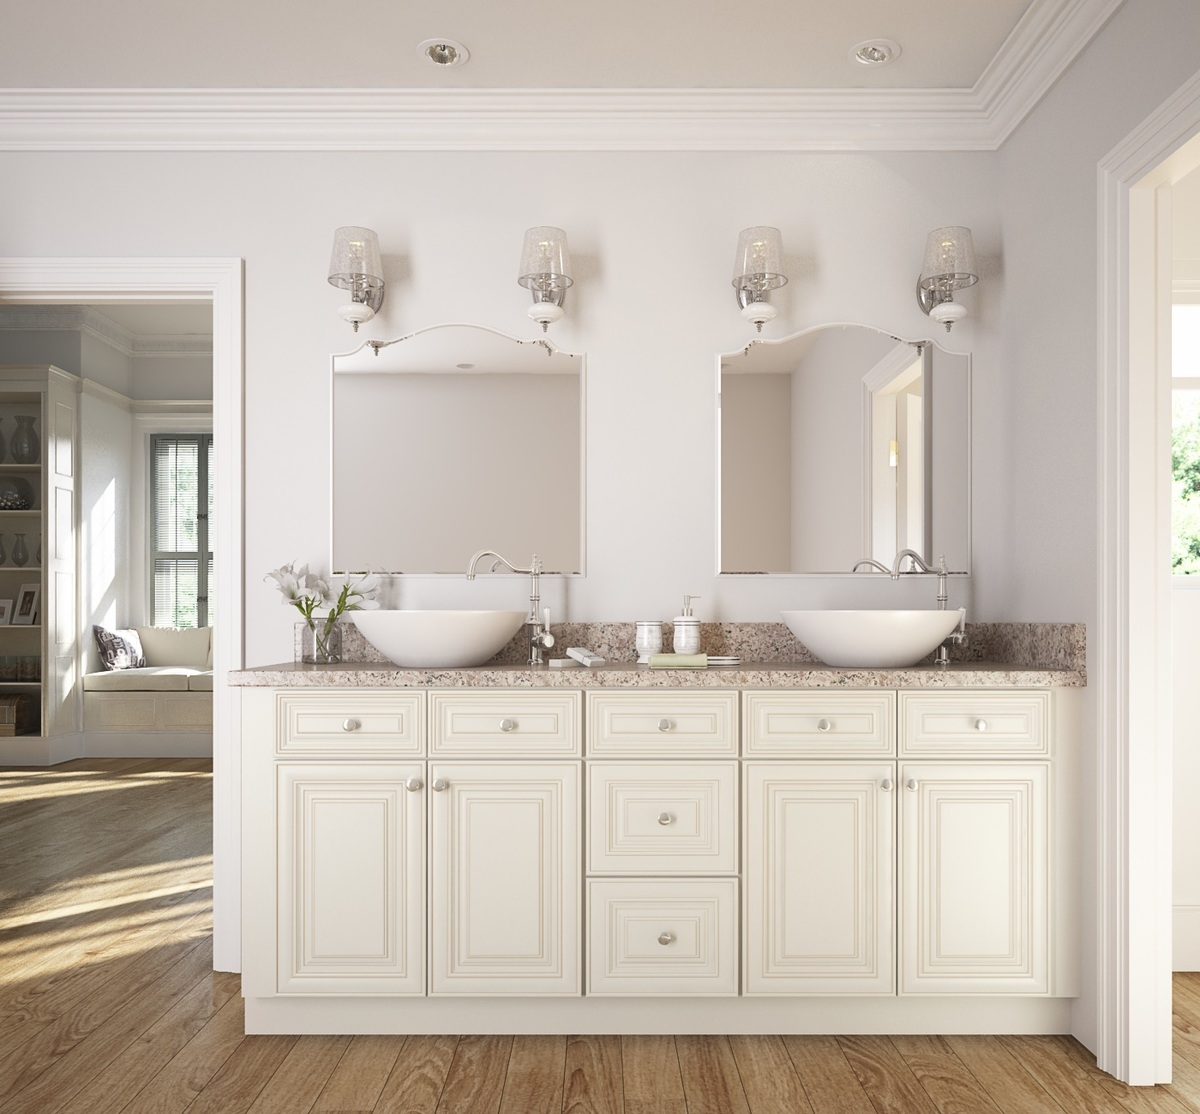 Cambridge Antique White Glaze Ready to Assemble Bathroom Vanities & Cabinets.  Cambridge%20Antique%20White%20Glaze - Cambridge Antique White Glaze - Ready To Assemble Bathroom Vanities